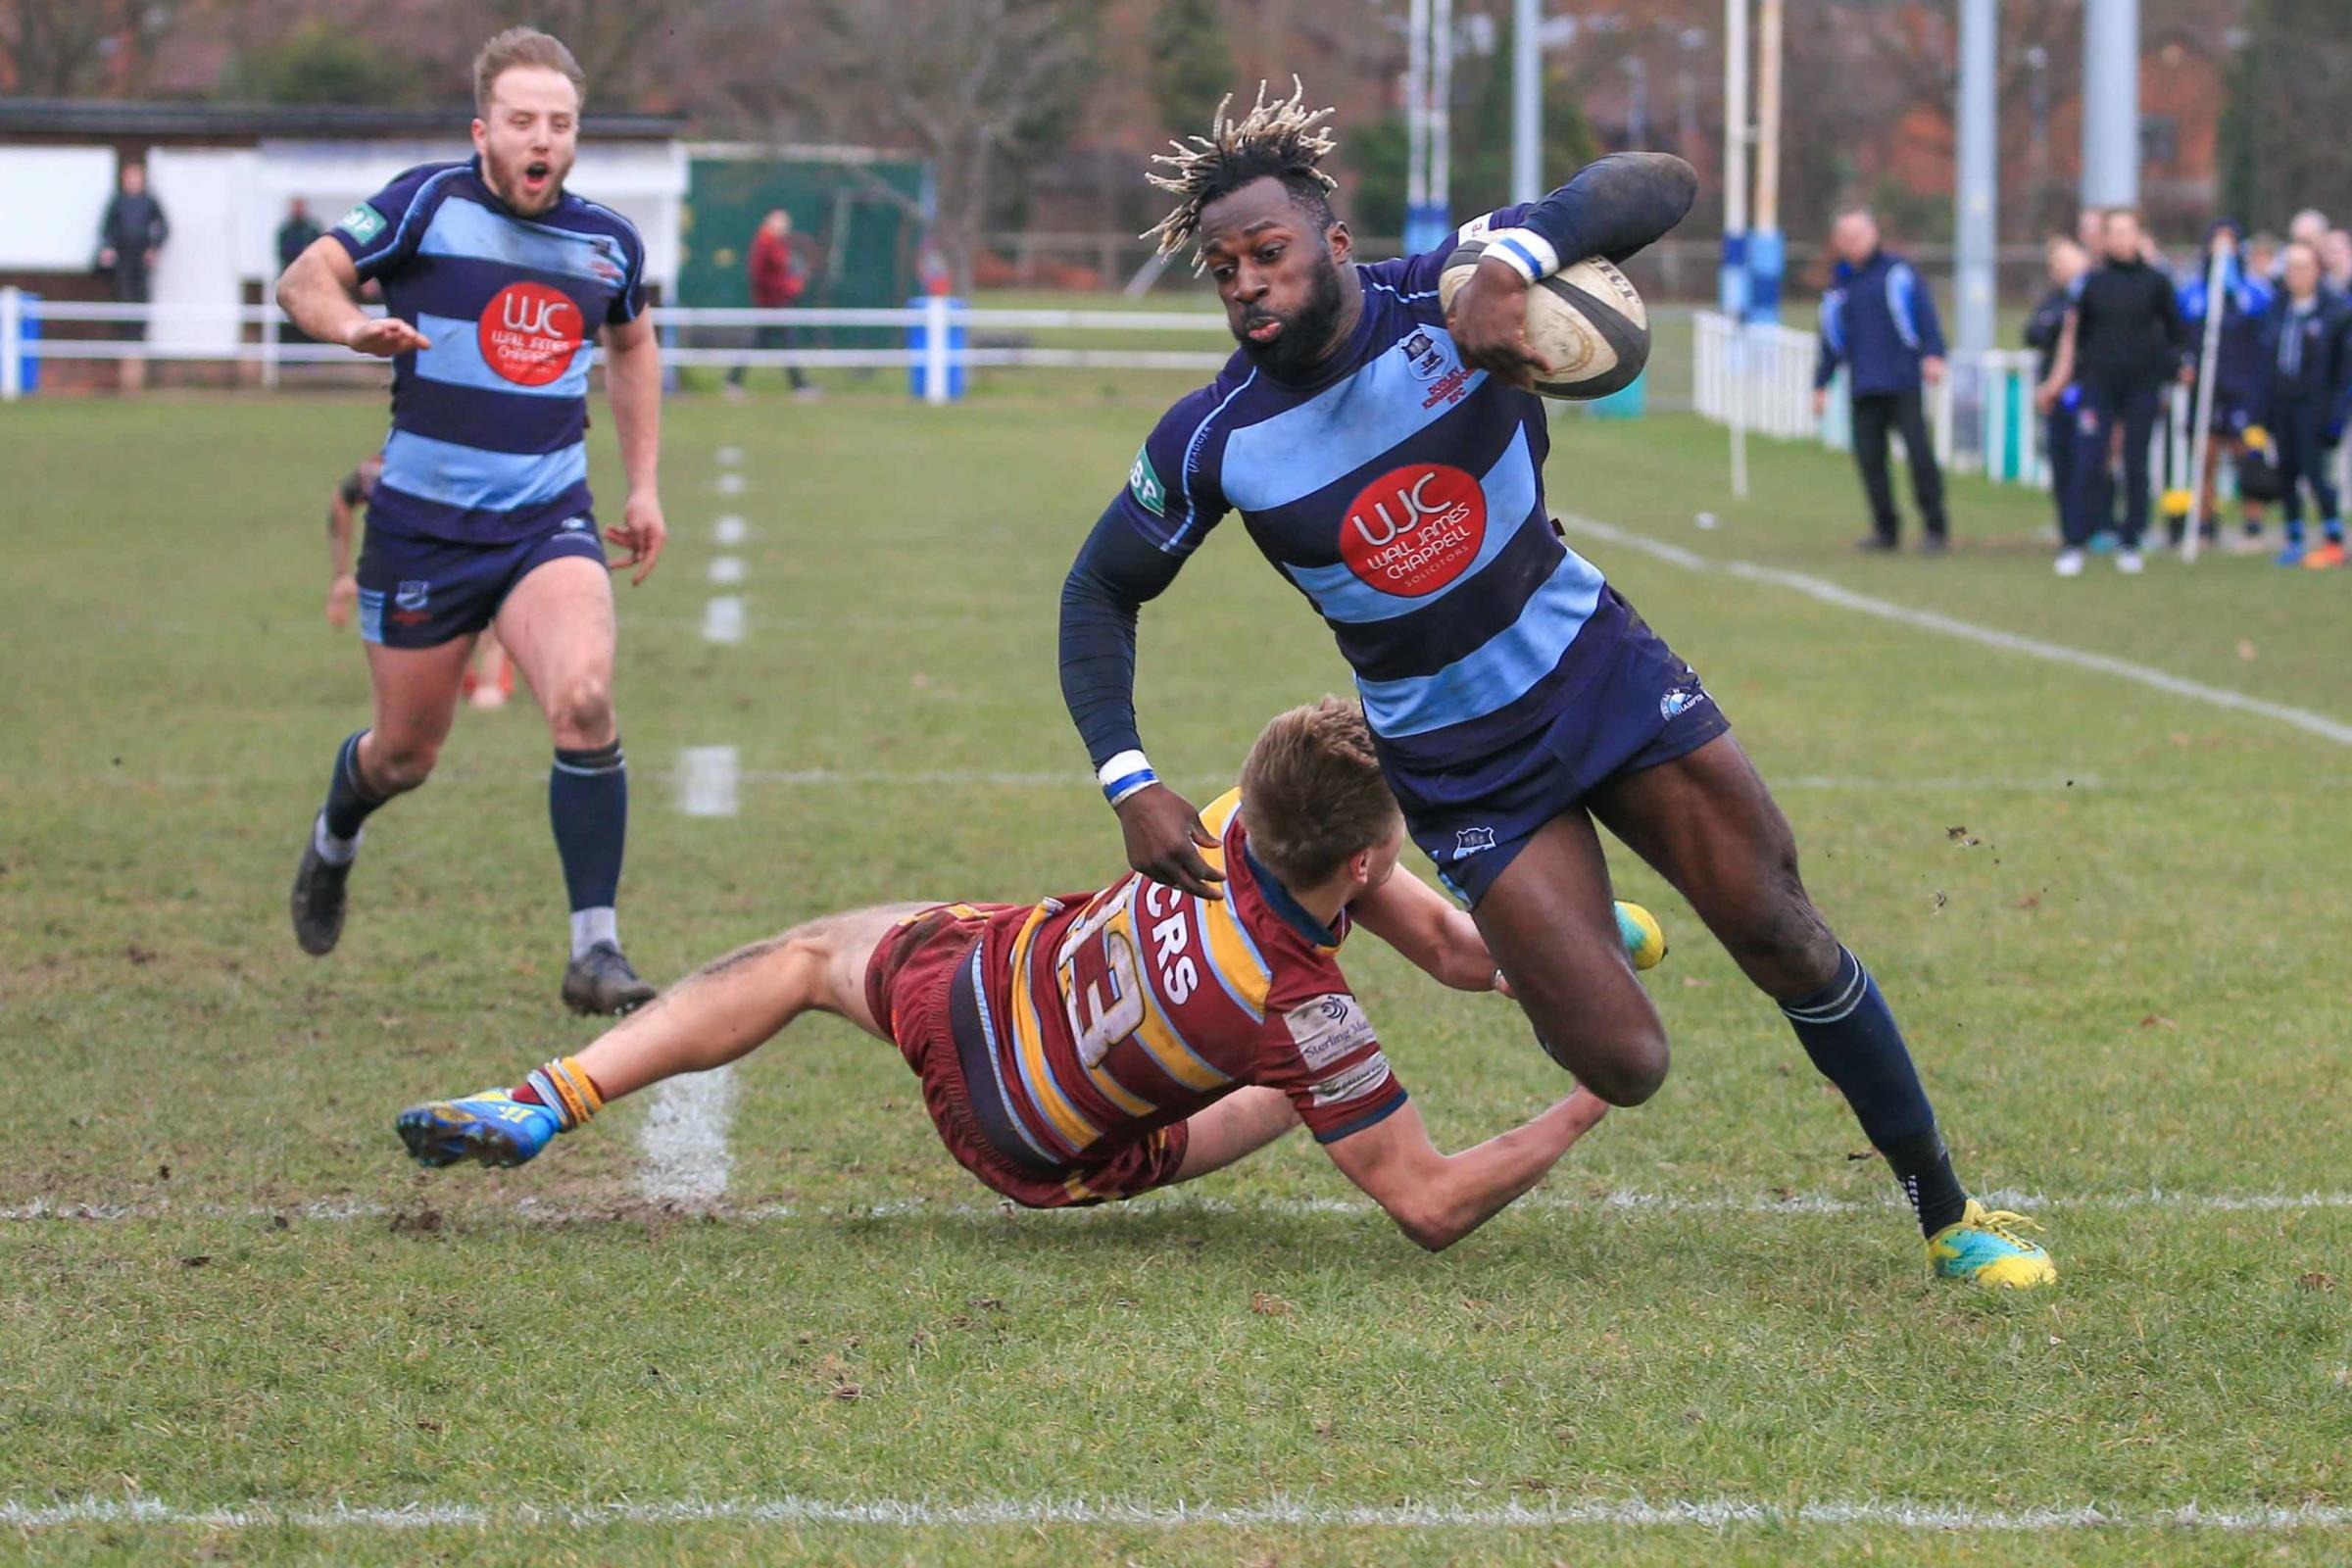 Charles Buffour rounds his man to score his third try. Photo by Ian Jackson